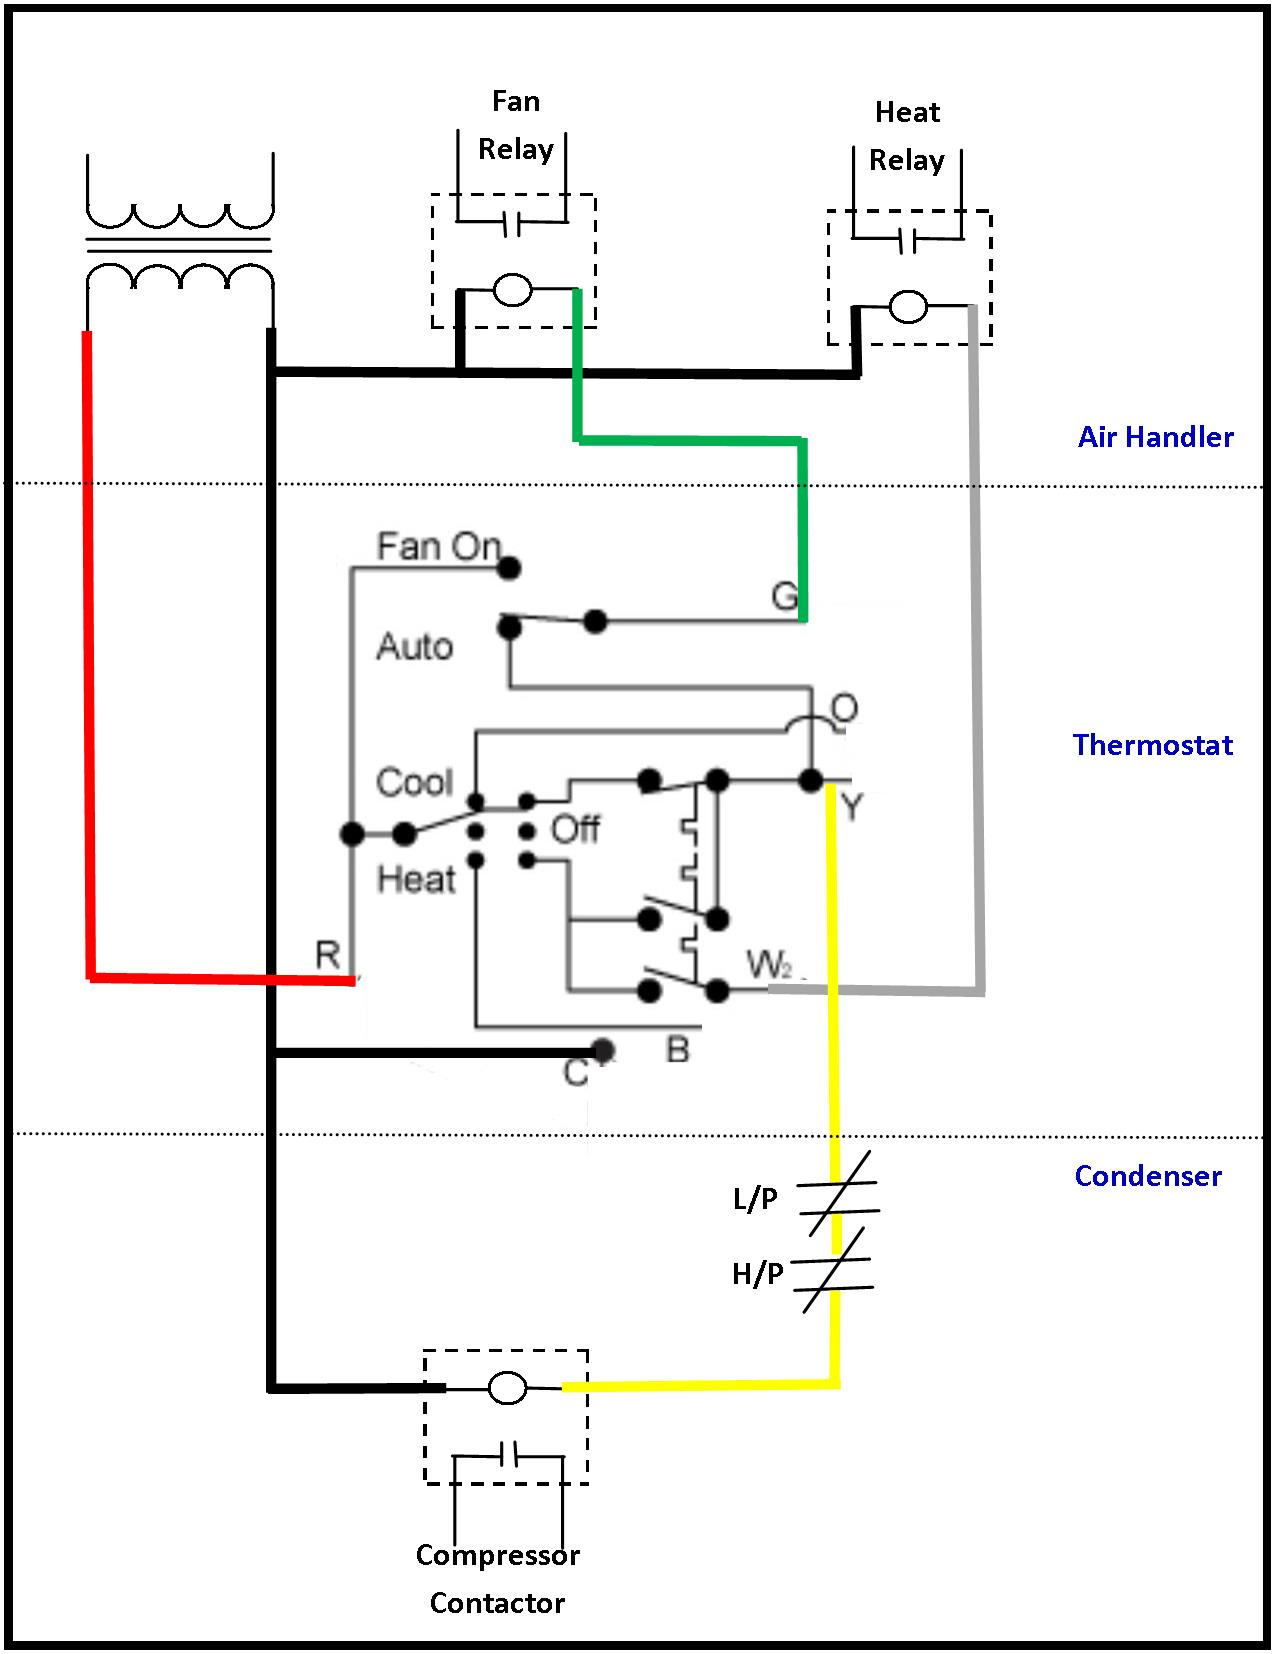 AC low voltage wiring diagram1 hvac wiring diagram efcaviation com thermostat heating and air wiring diagram at gsmx.co